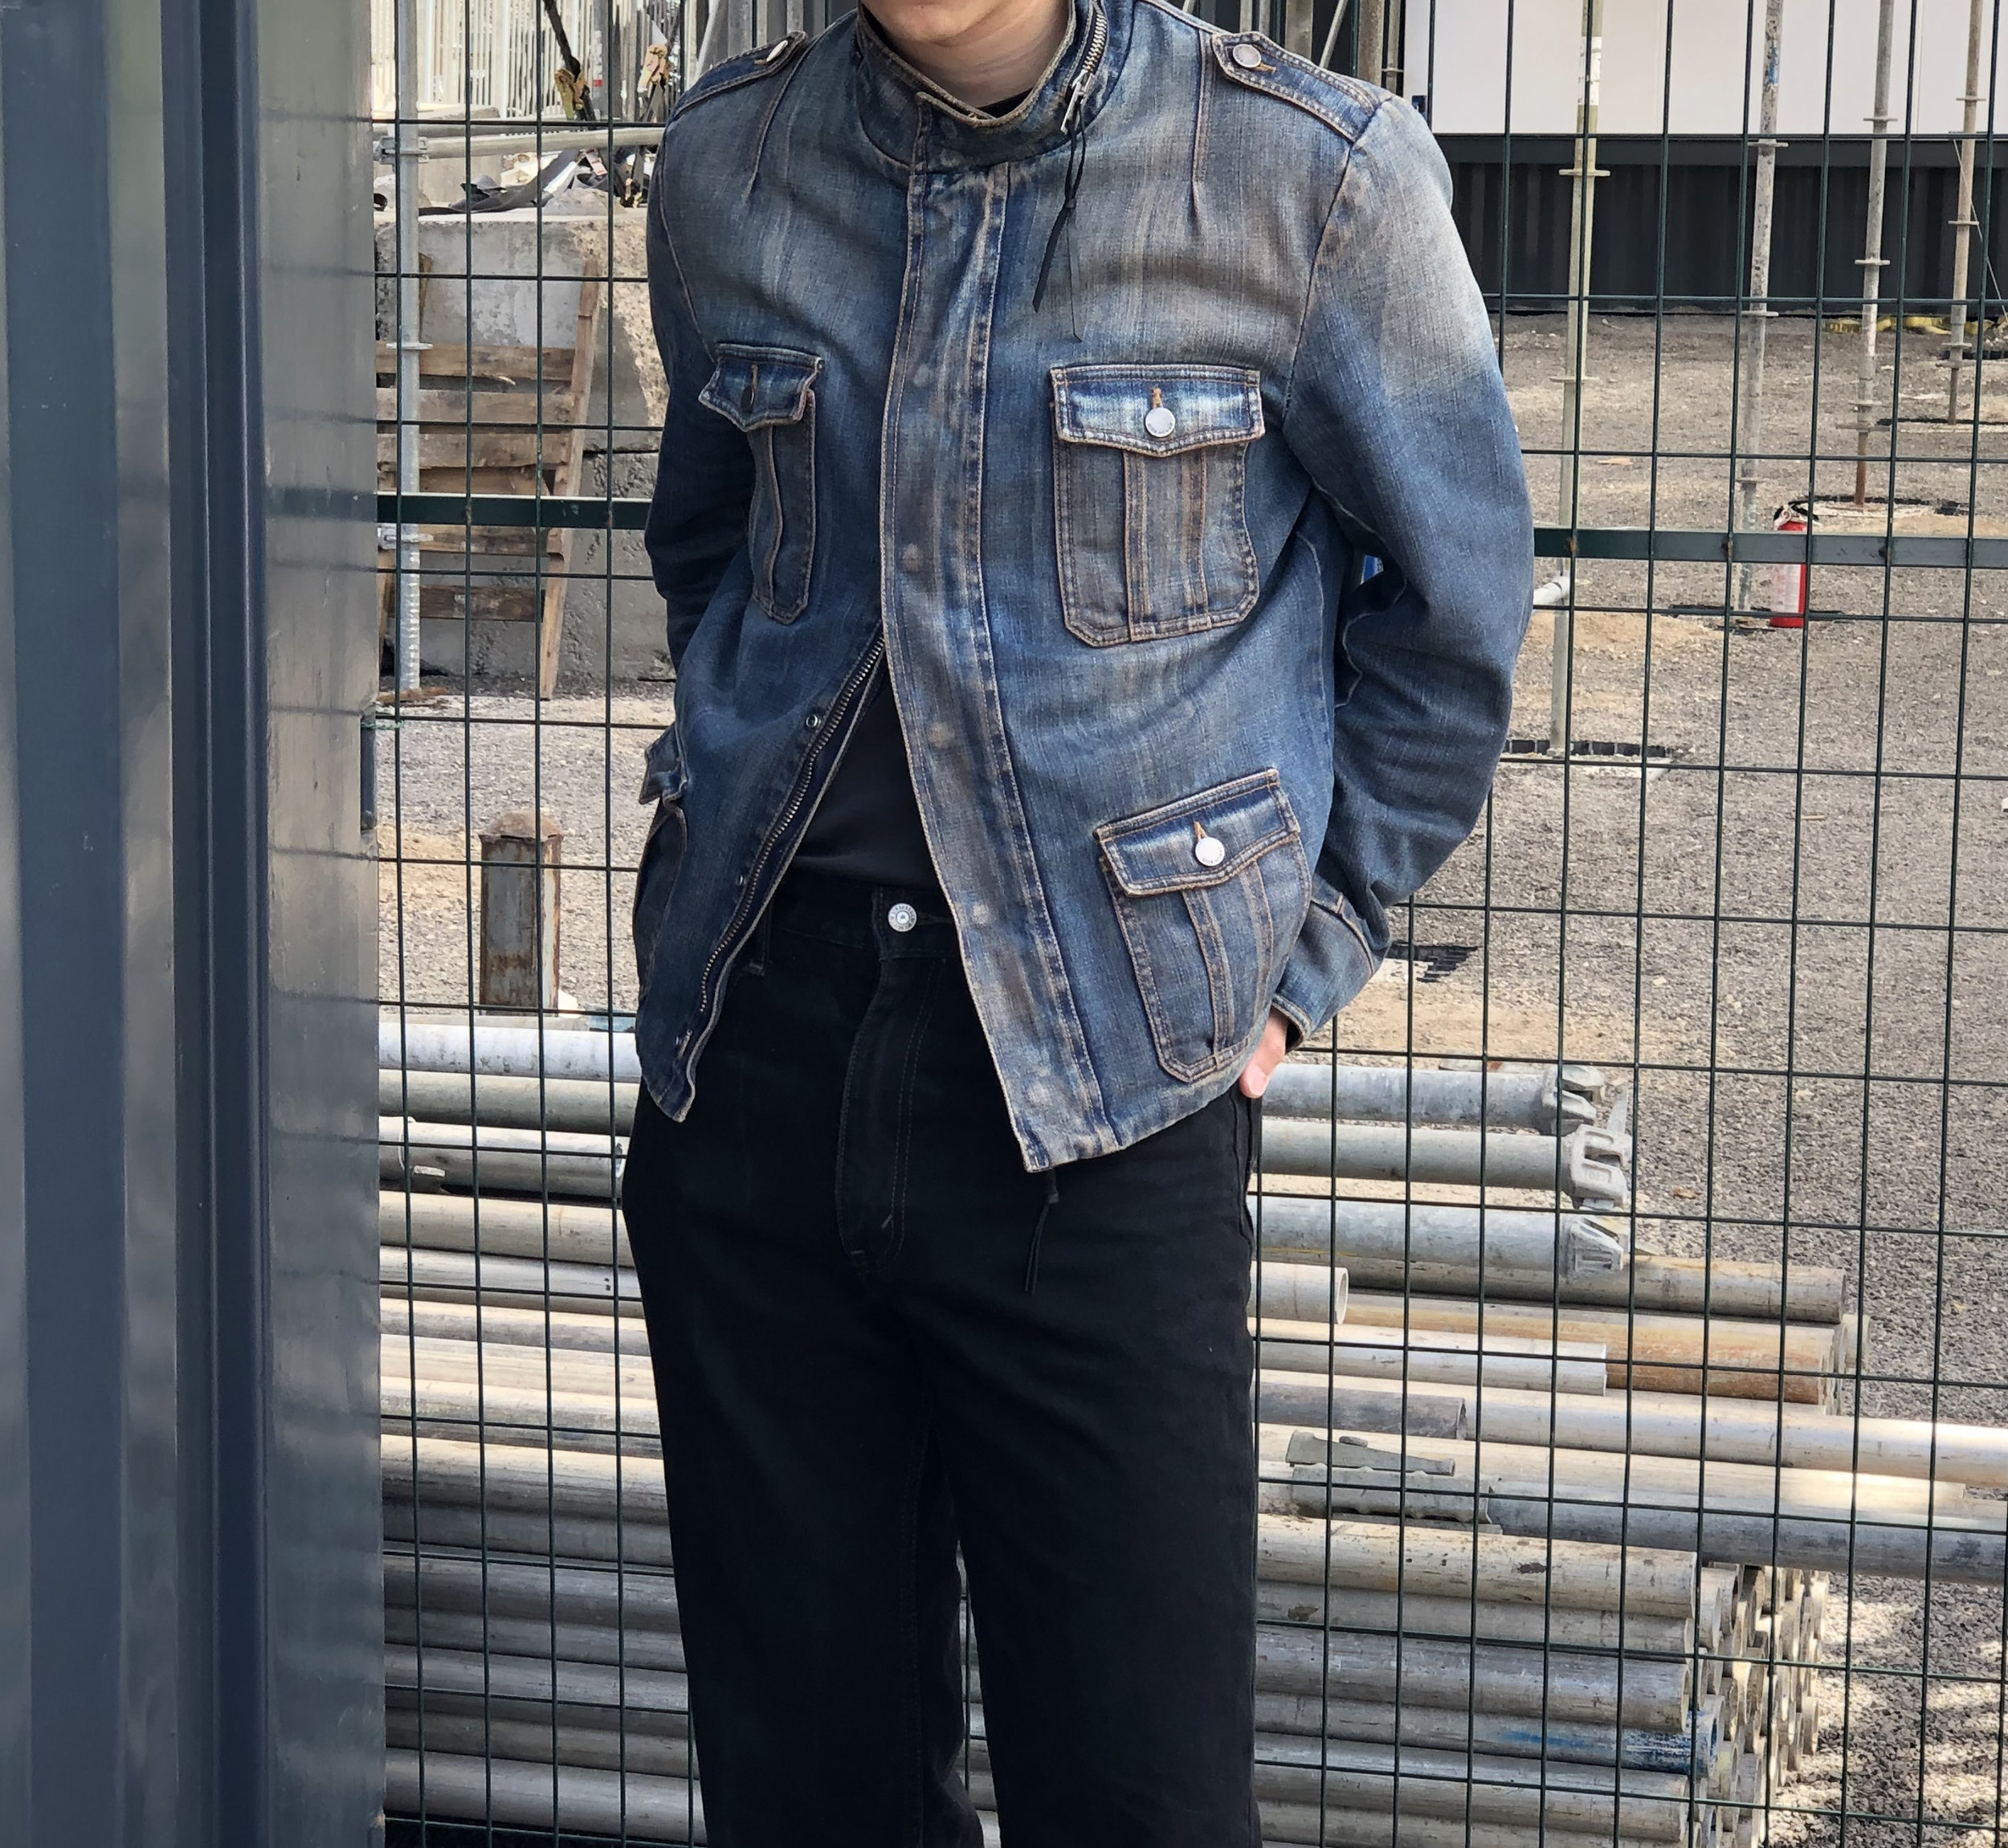 """FEATURED: Dior Homme AW05 """"Razorlight In The Morning"""" M-65 style cargo denim jacket"""